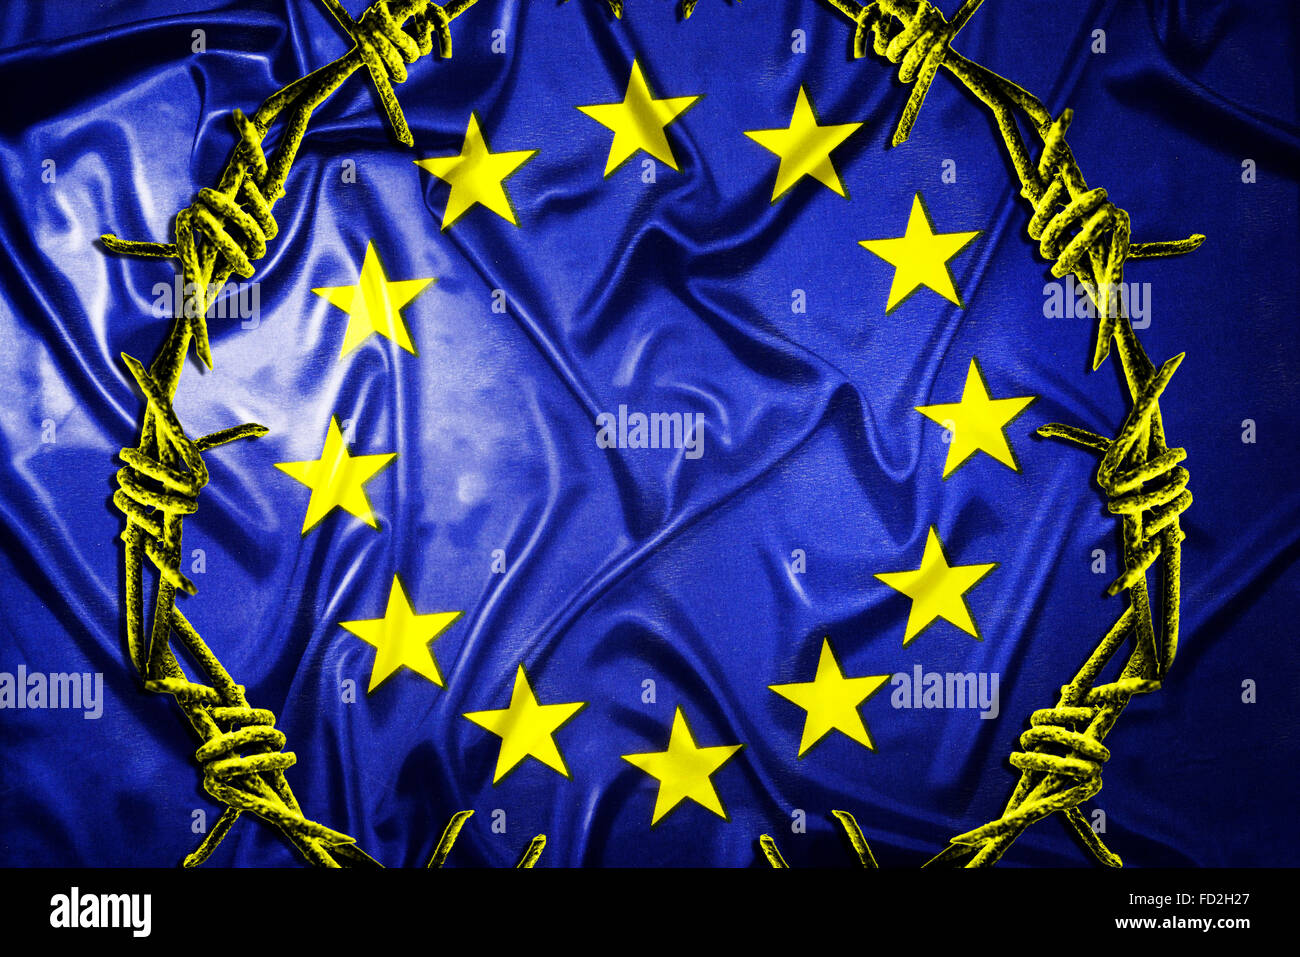 Flag of the European Union and barbed wire, refugee crisis - Stock Image